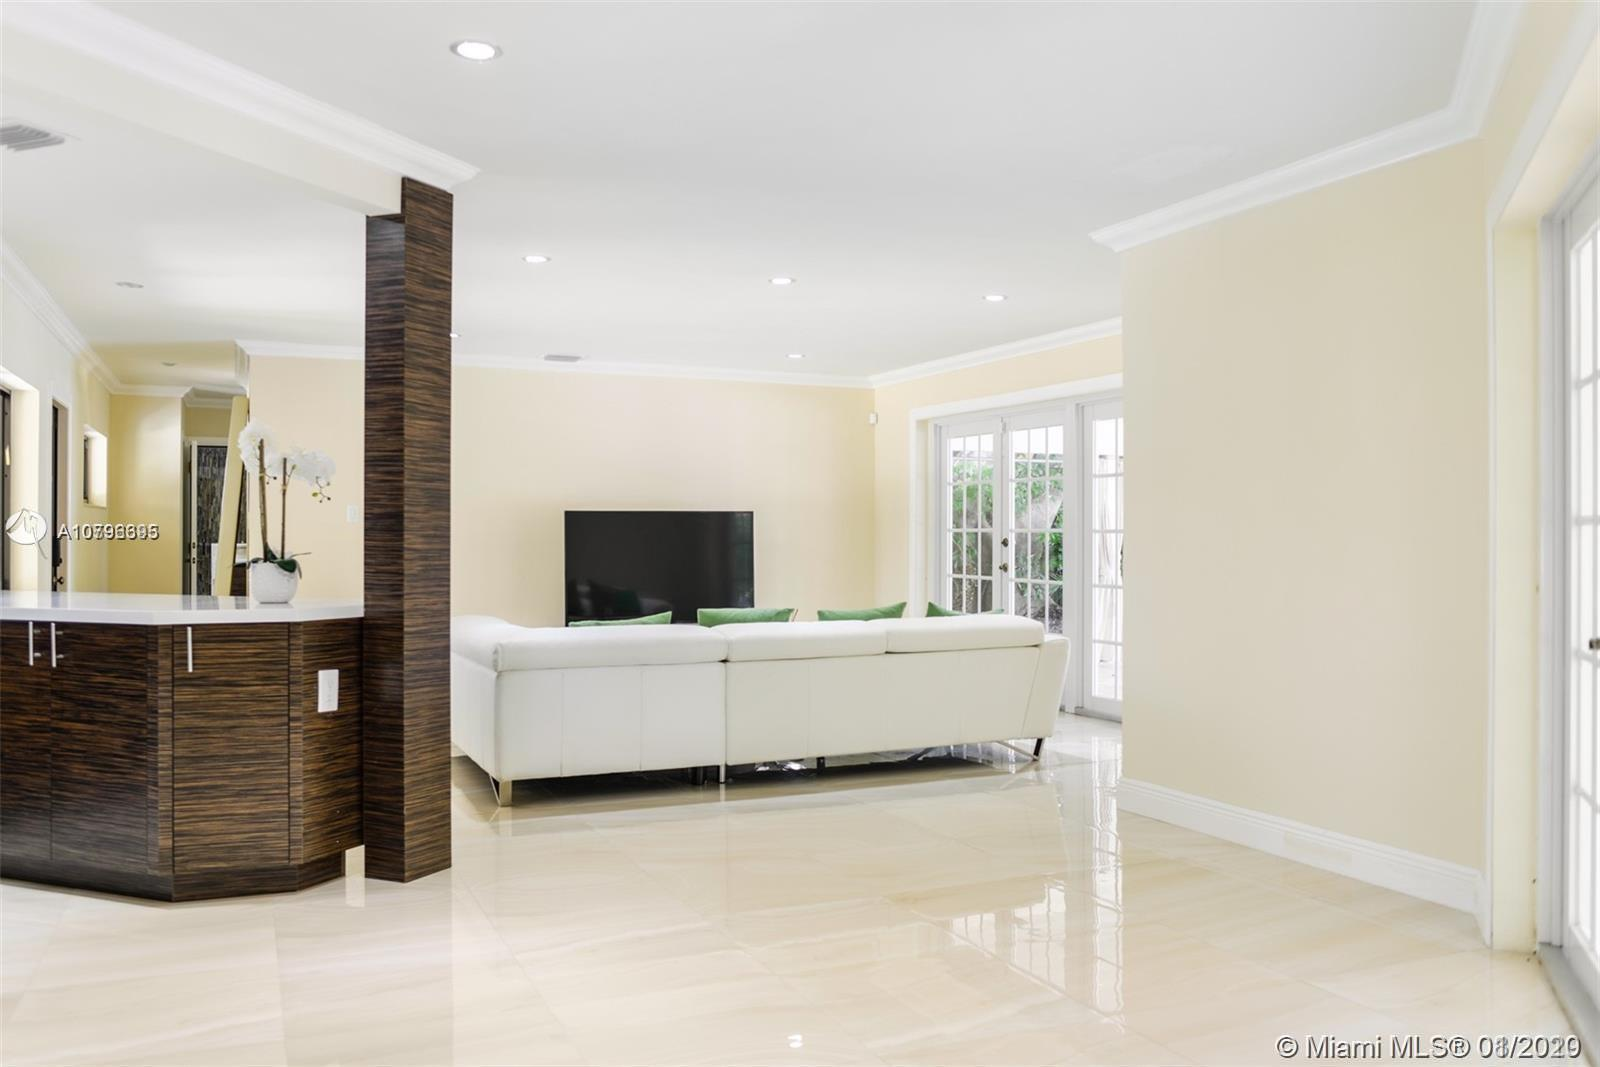 Wonderful opportunity in the heart of POMPANO BEACH! Everything that you could ever dream about: ful